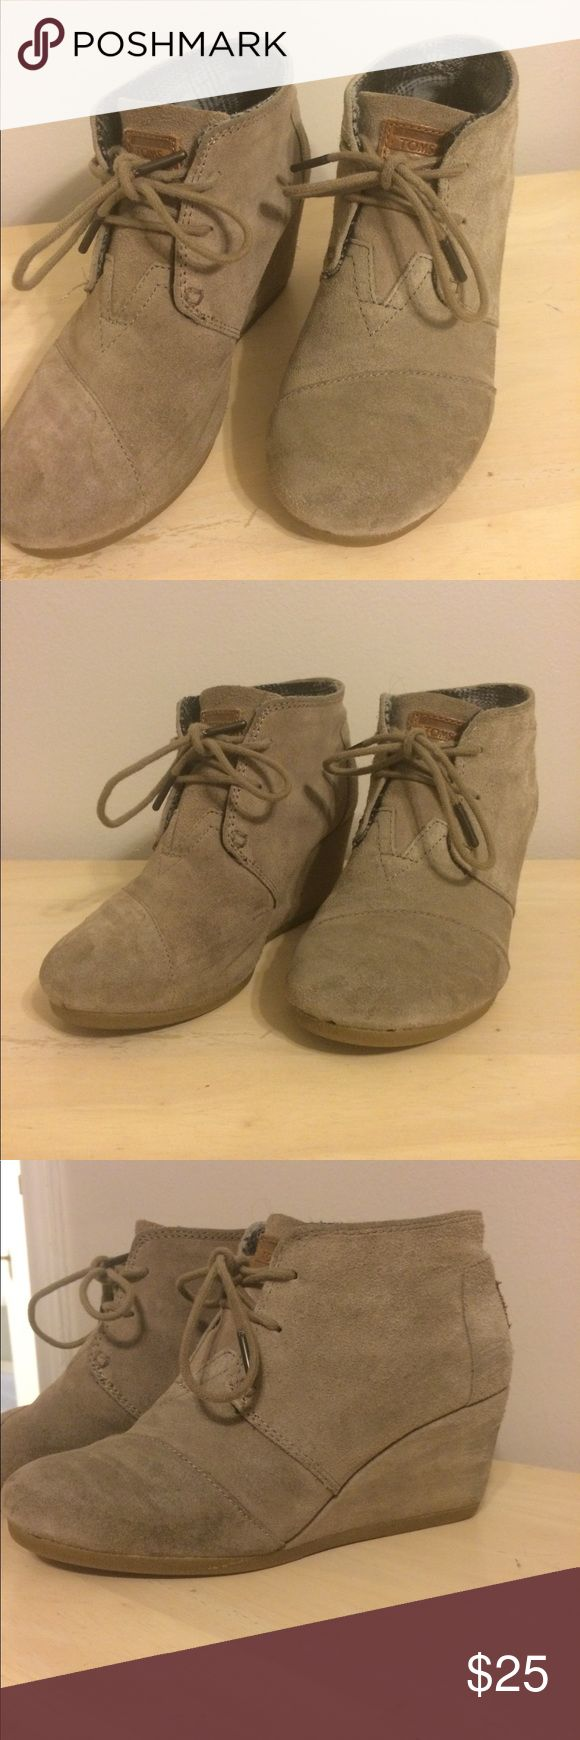 TOMS wedge booties gray Gray TOMS wedge booties are in great prelove condition. Loose stitch as shown in picture. 6.5 Toms Shoes Ankle Boots & Booties